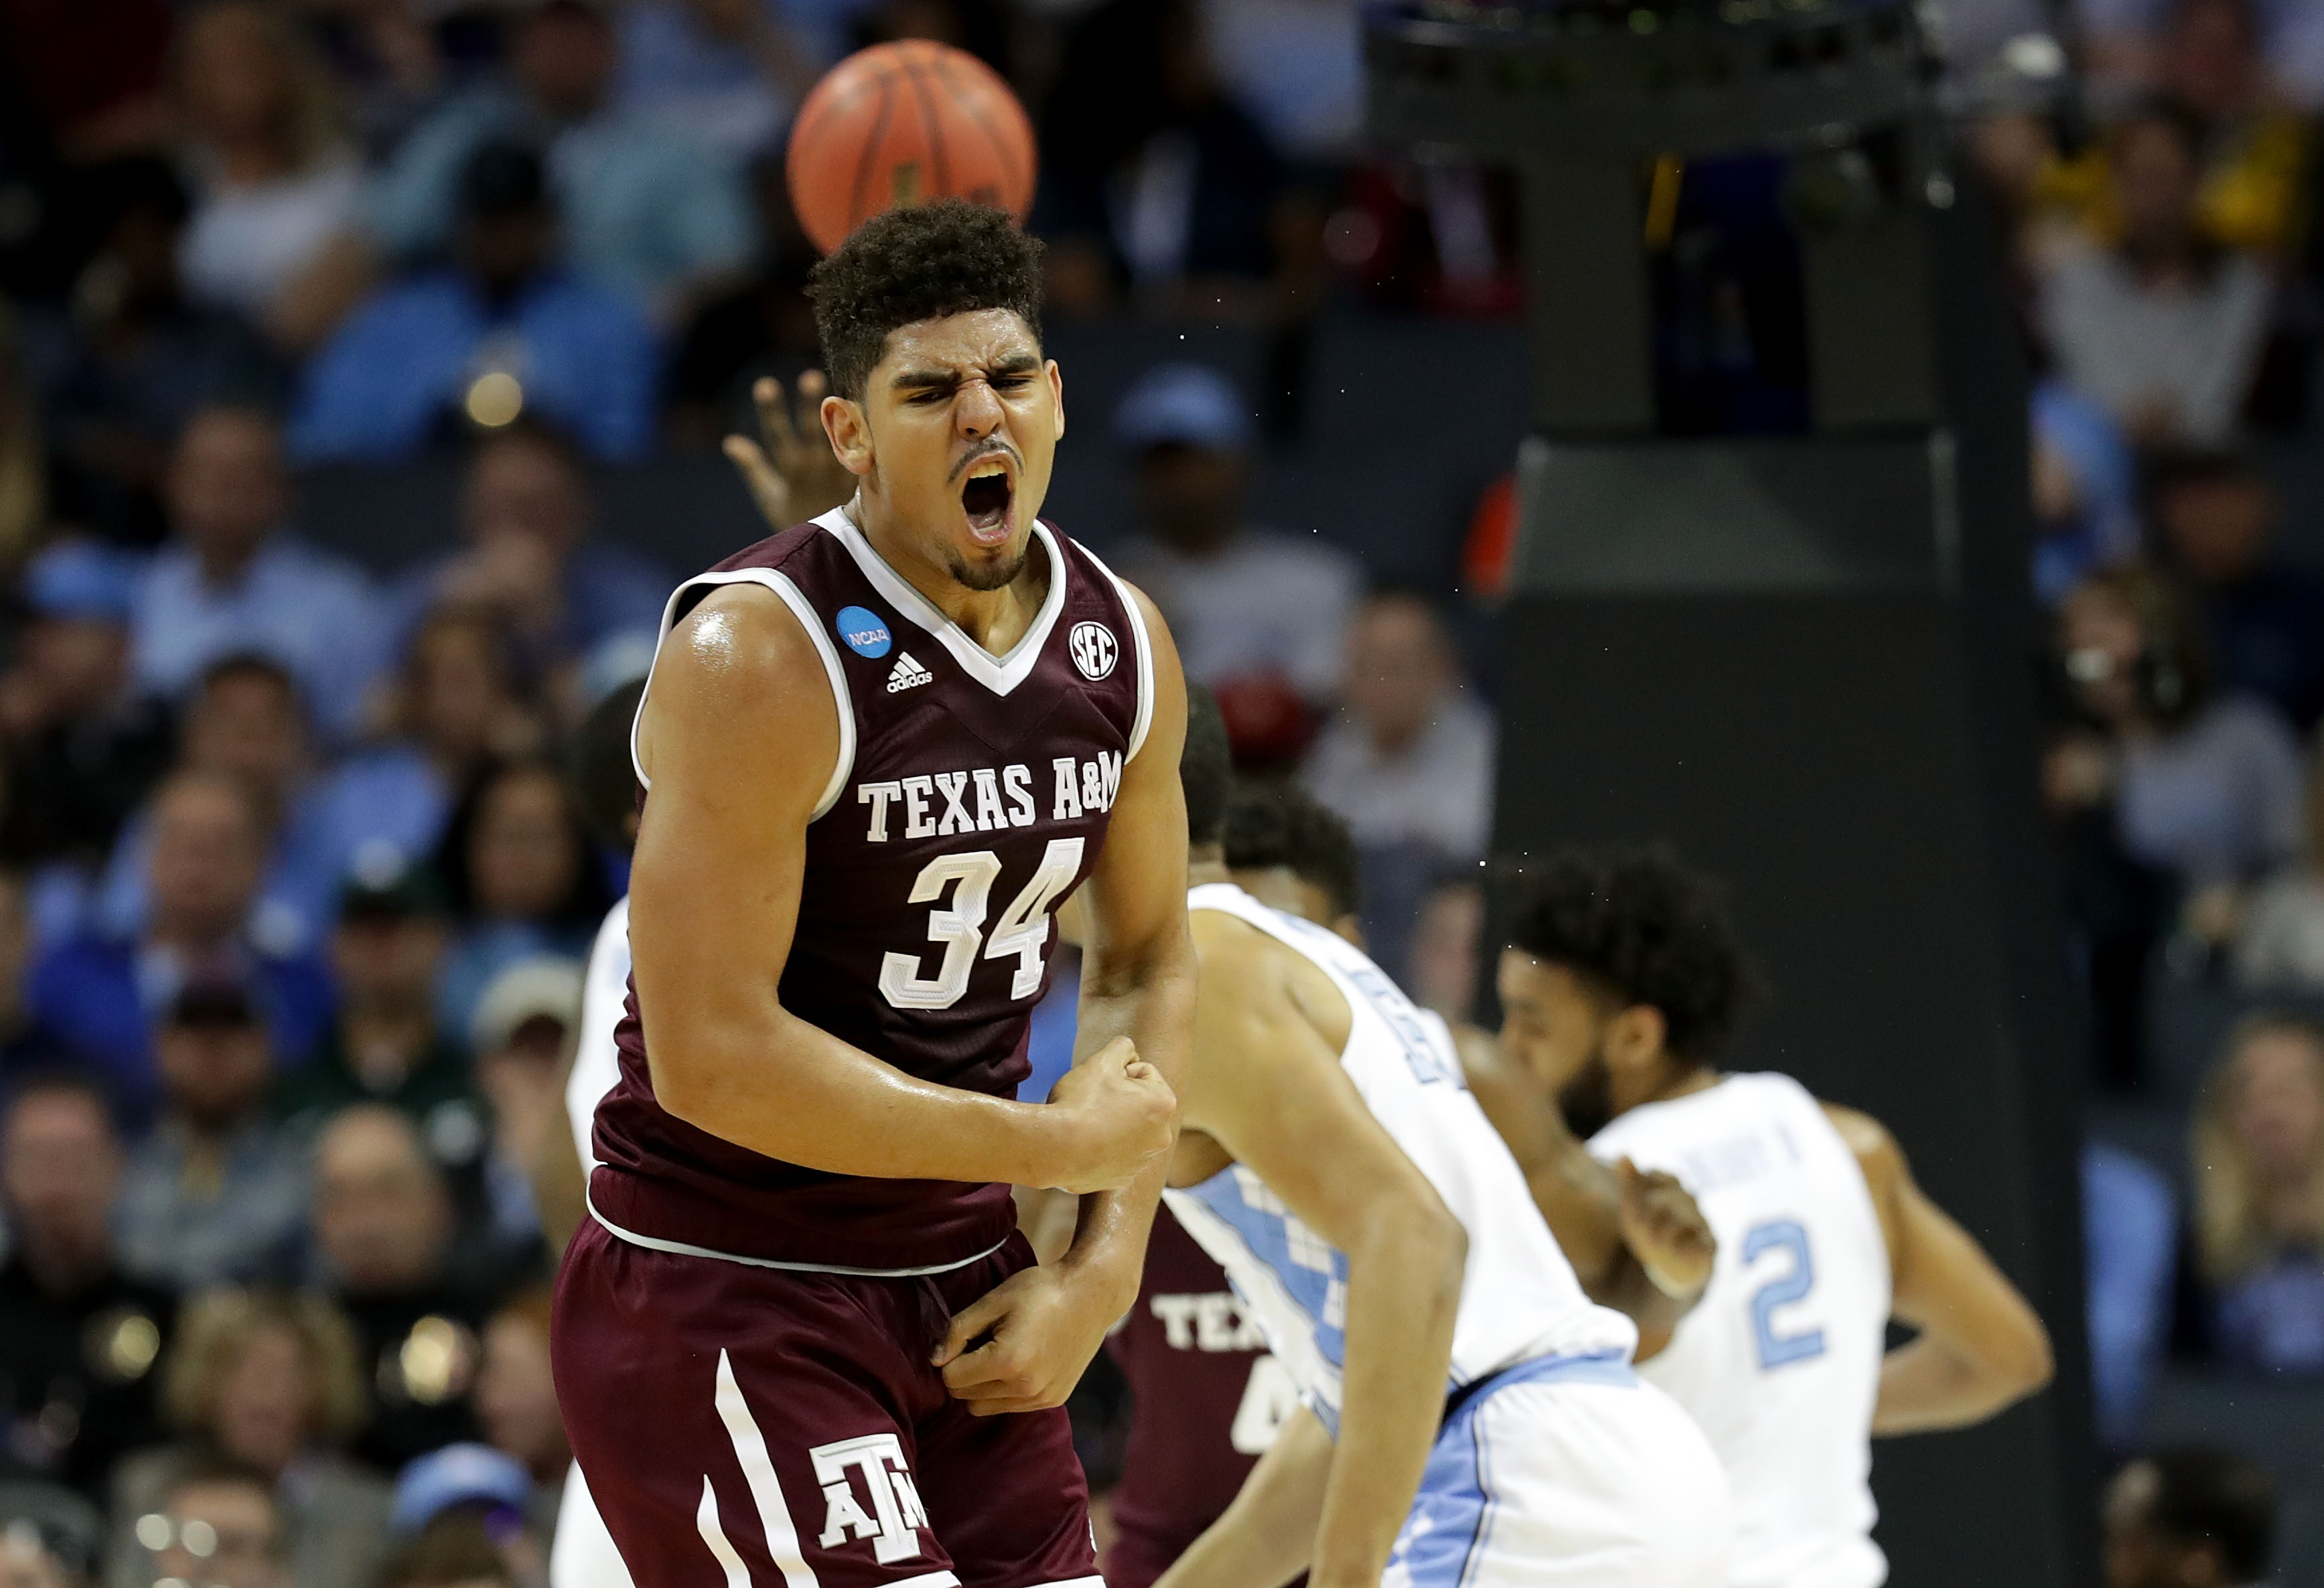 MI knocks out Texas A&M in Sweet 16 blowout